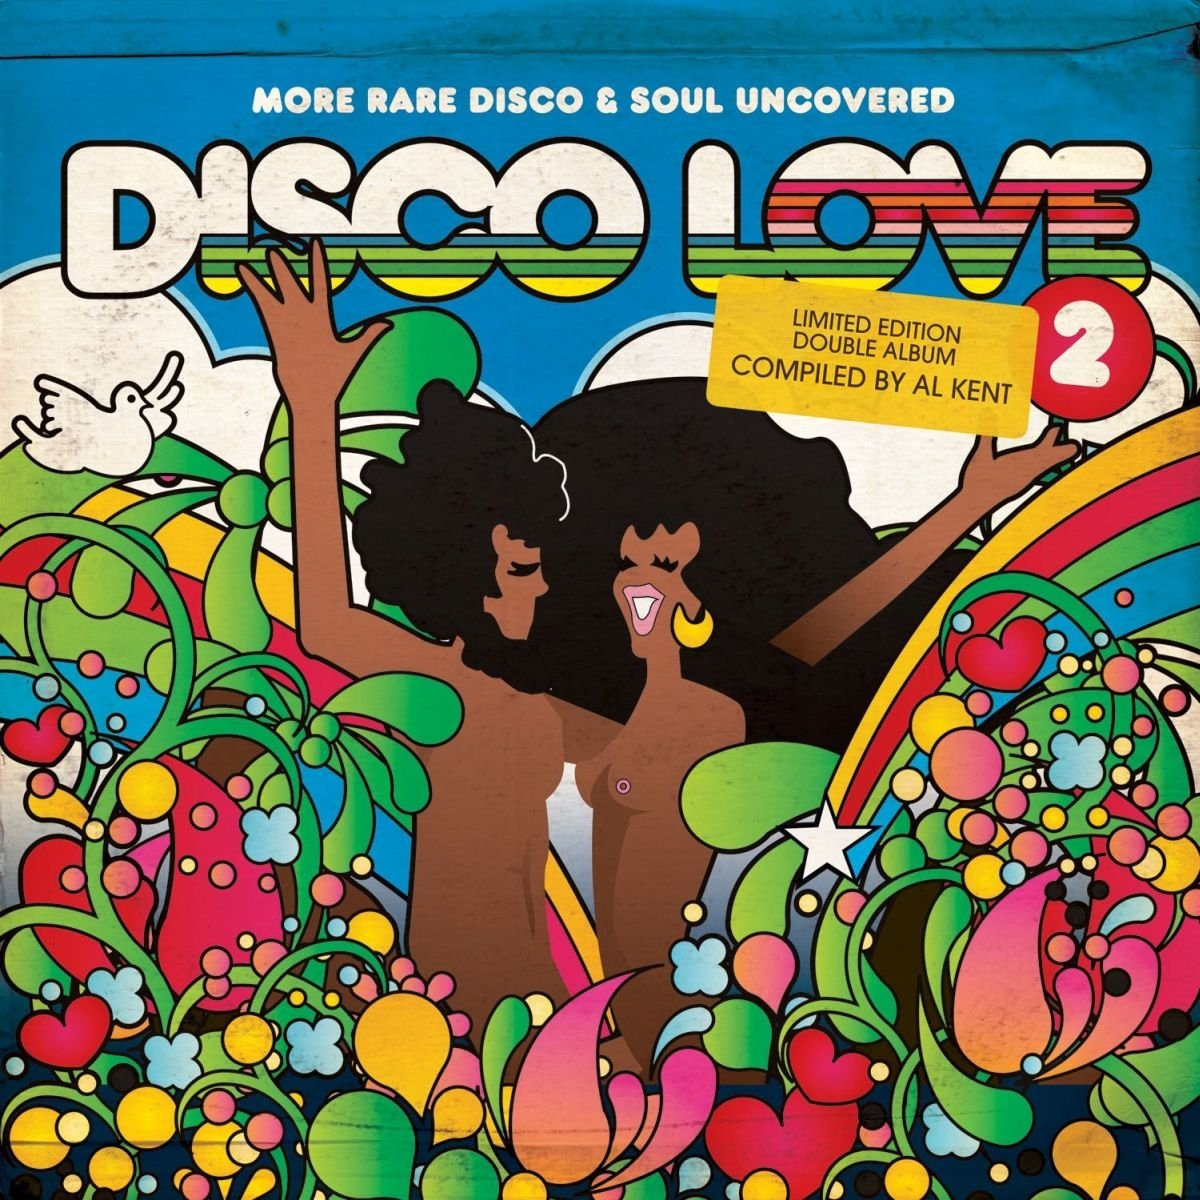 Disco Love 2: More Soul Rare SEAL limited product Max 51% OFF